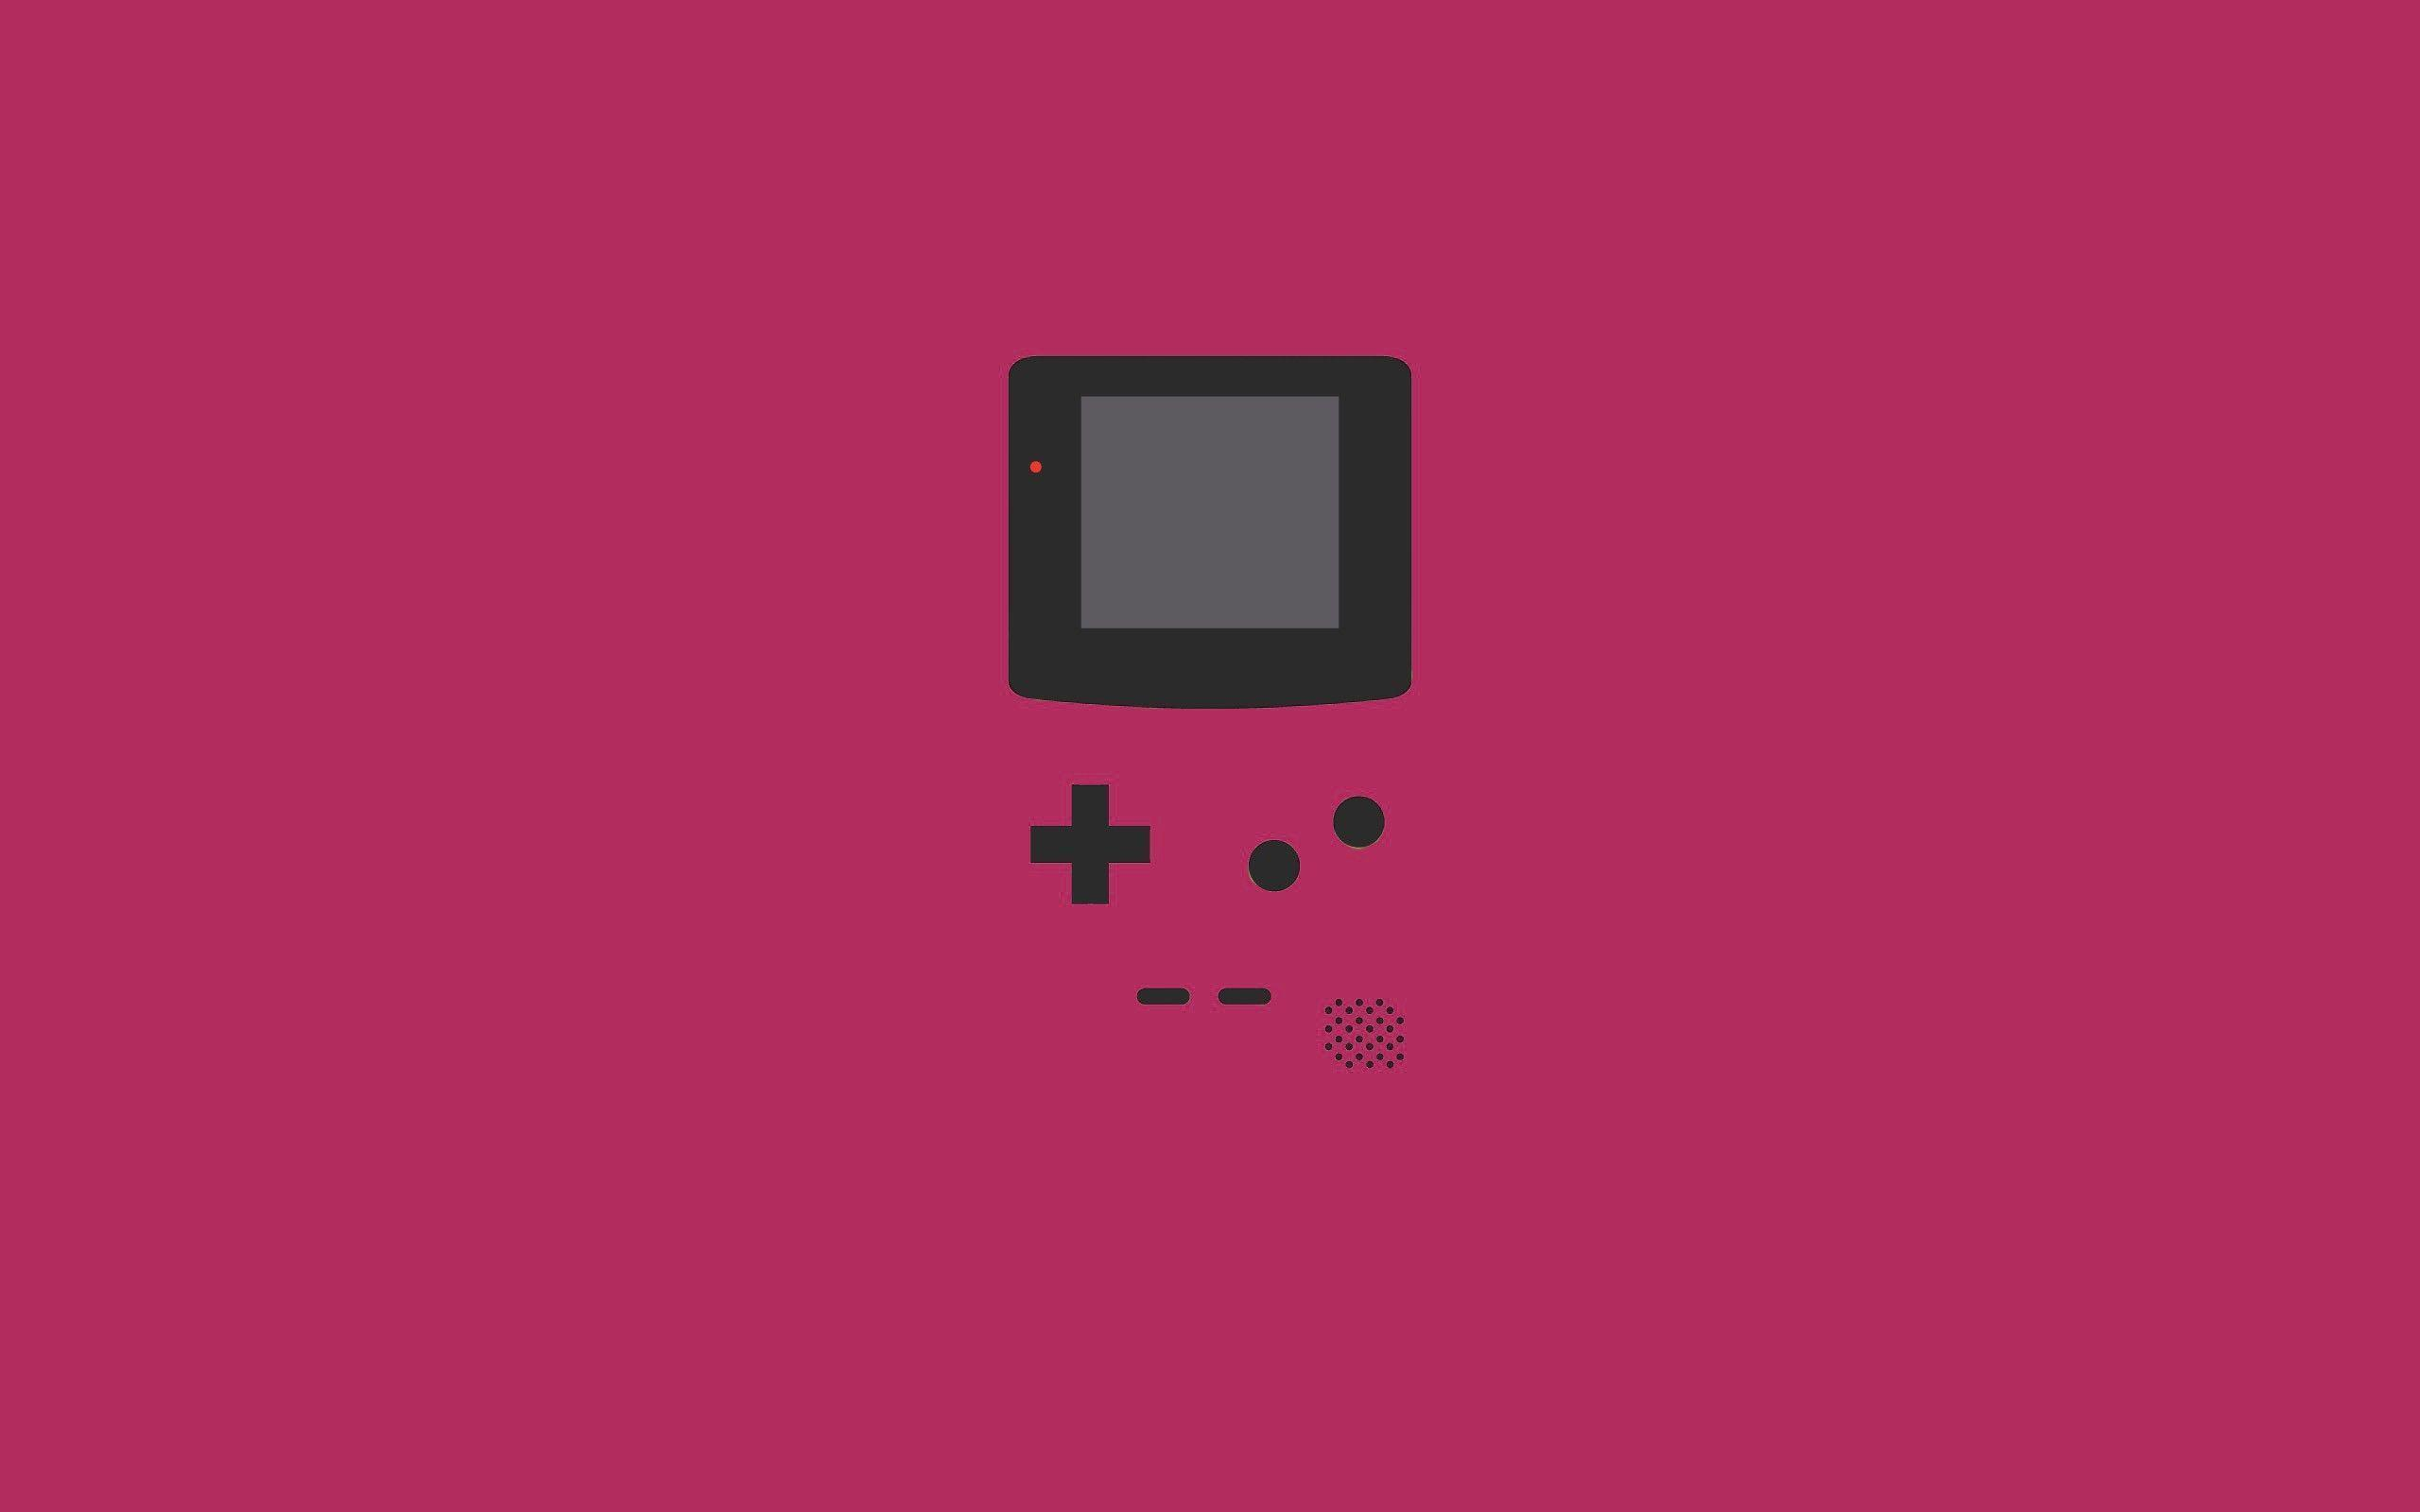 Game boy color online free - Gameboy Wallpaper 41558 2560x1600 Px